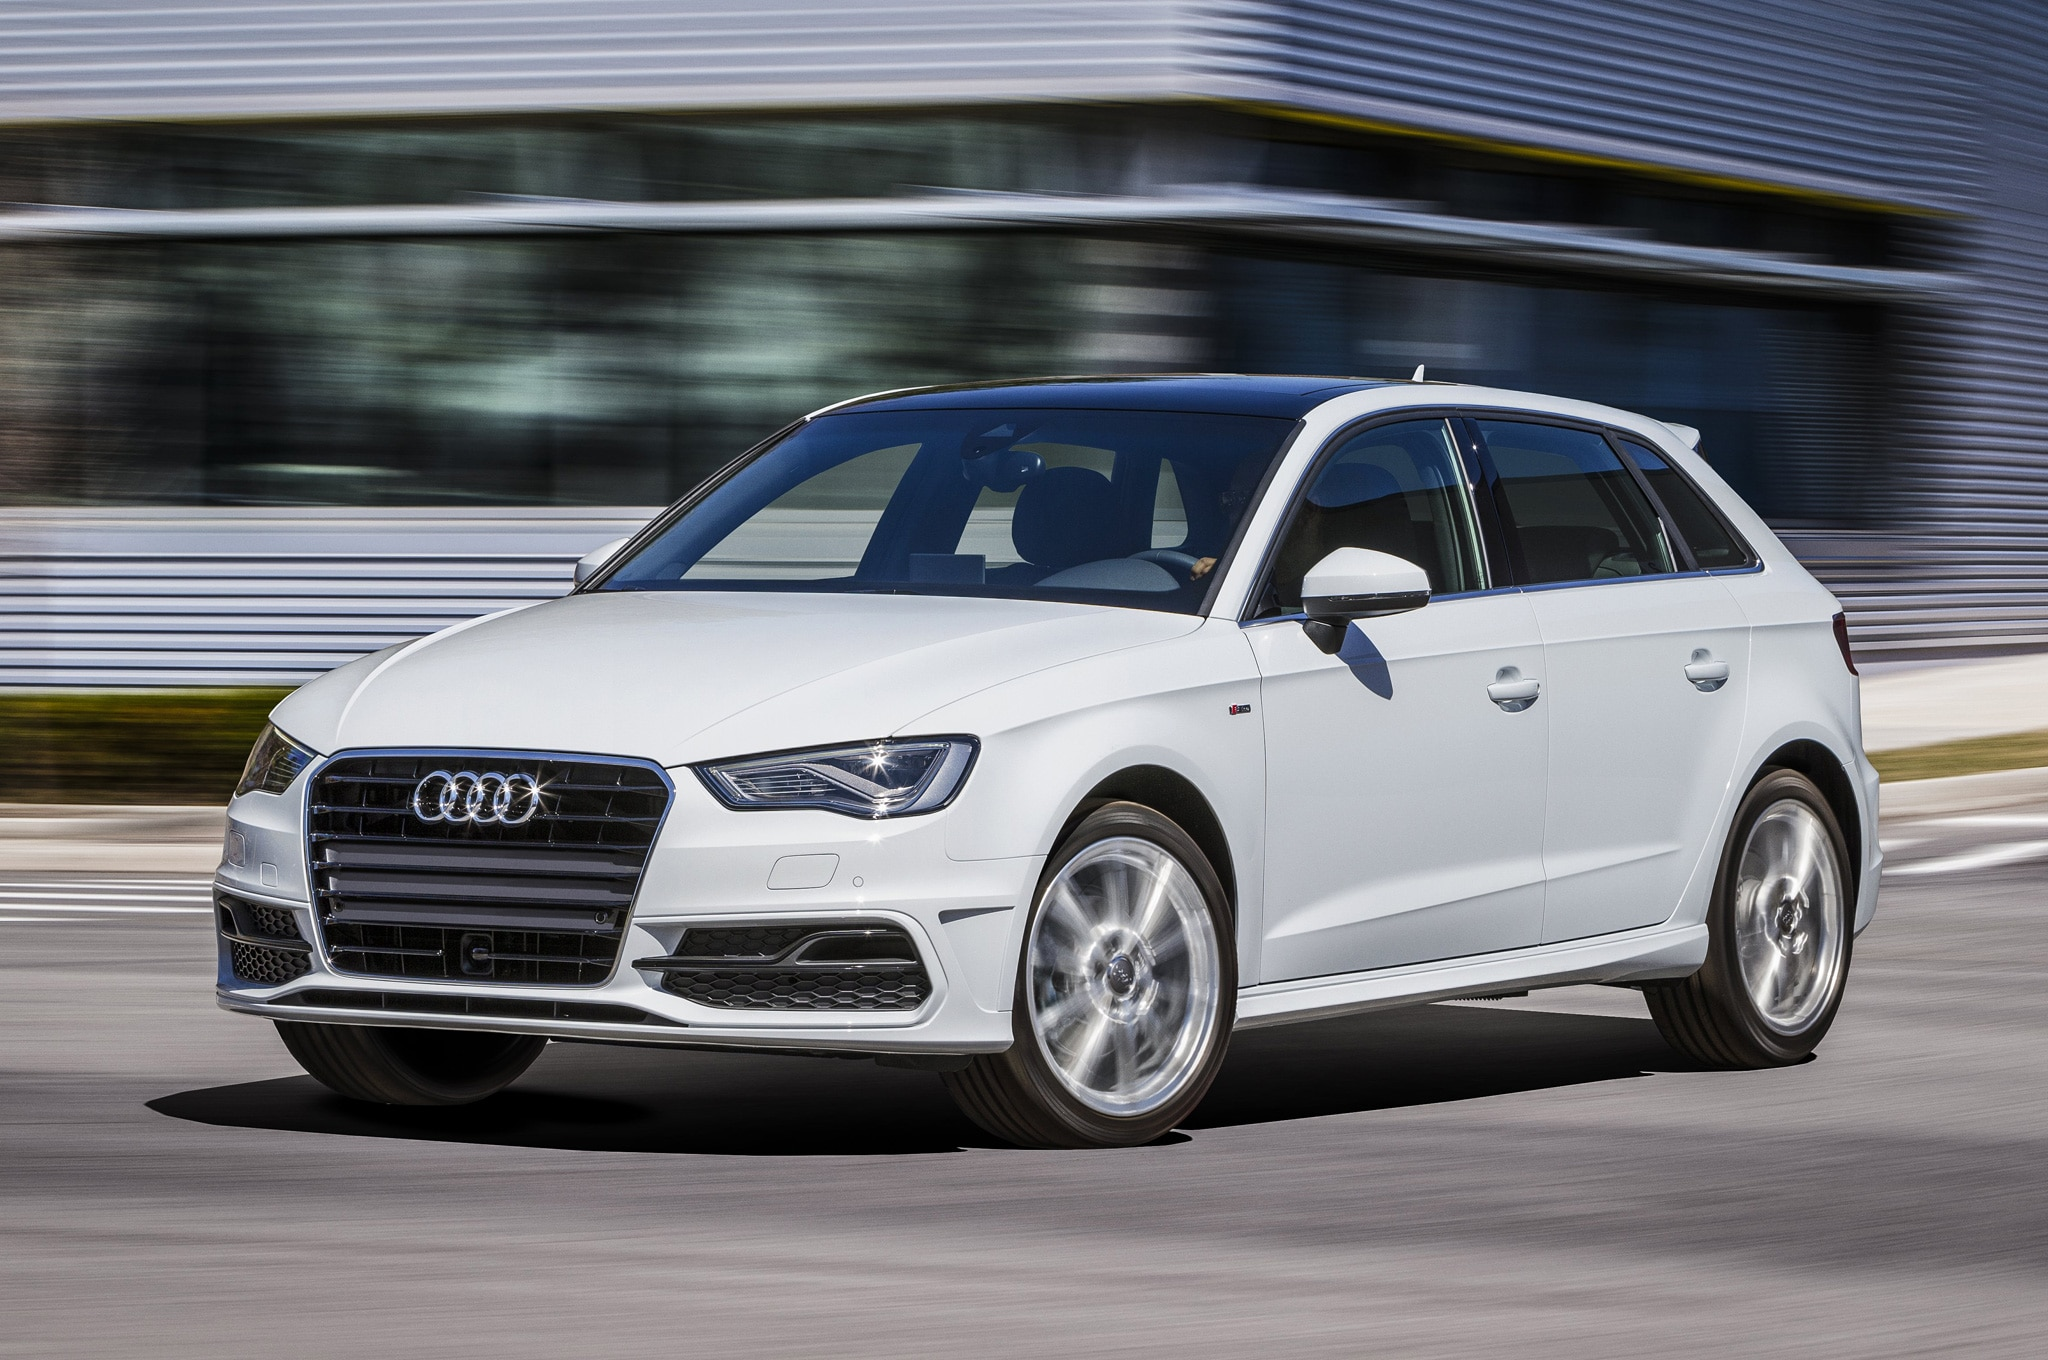 2016 Audi A3 TDI Hatchback Joins Lineup - Automobile Magazine